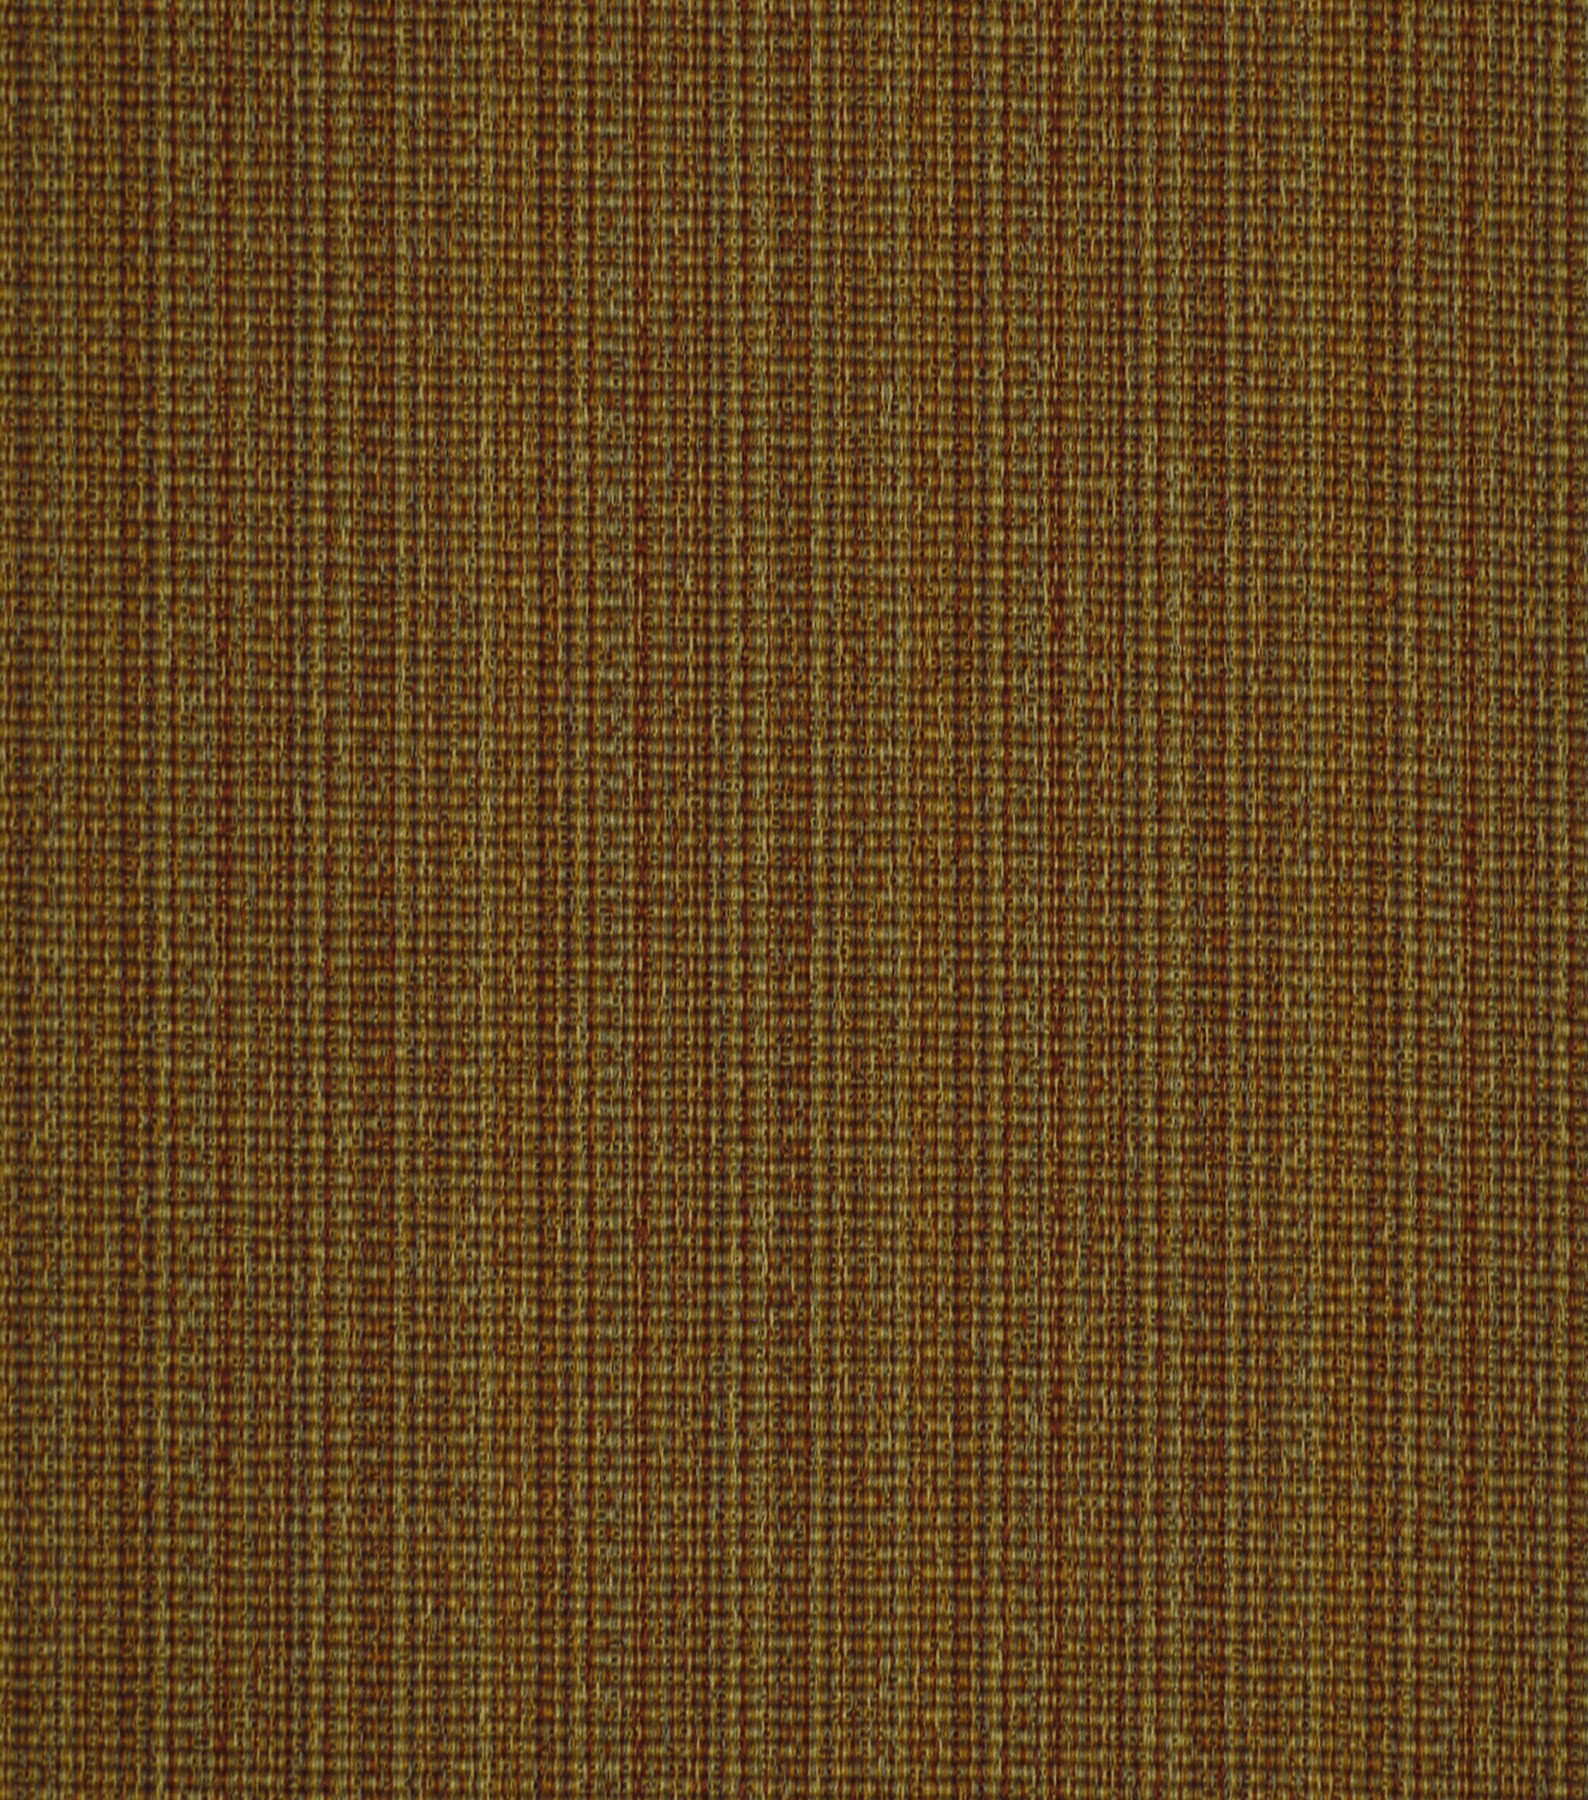 Home Decor 8\u0022x8\u0022 Fabric Swatch-Signature Series Run Along Jewel